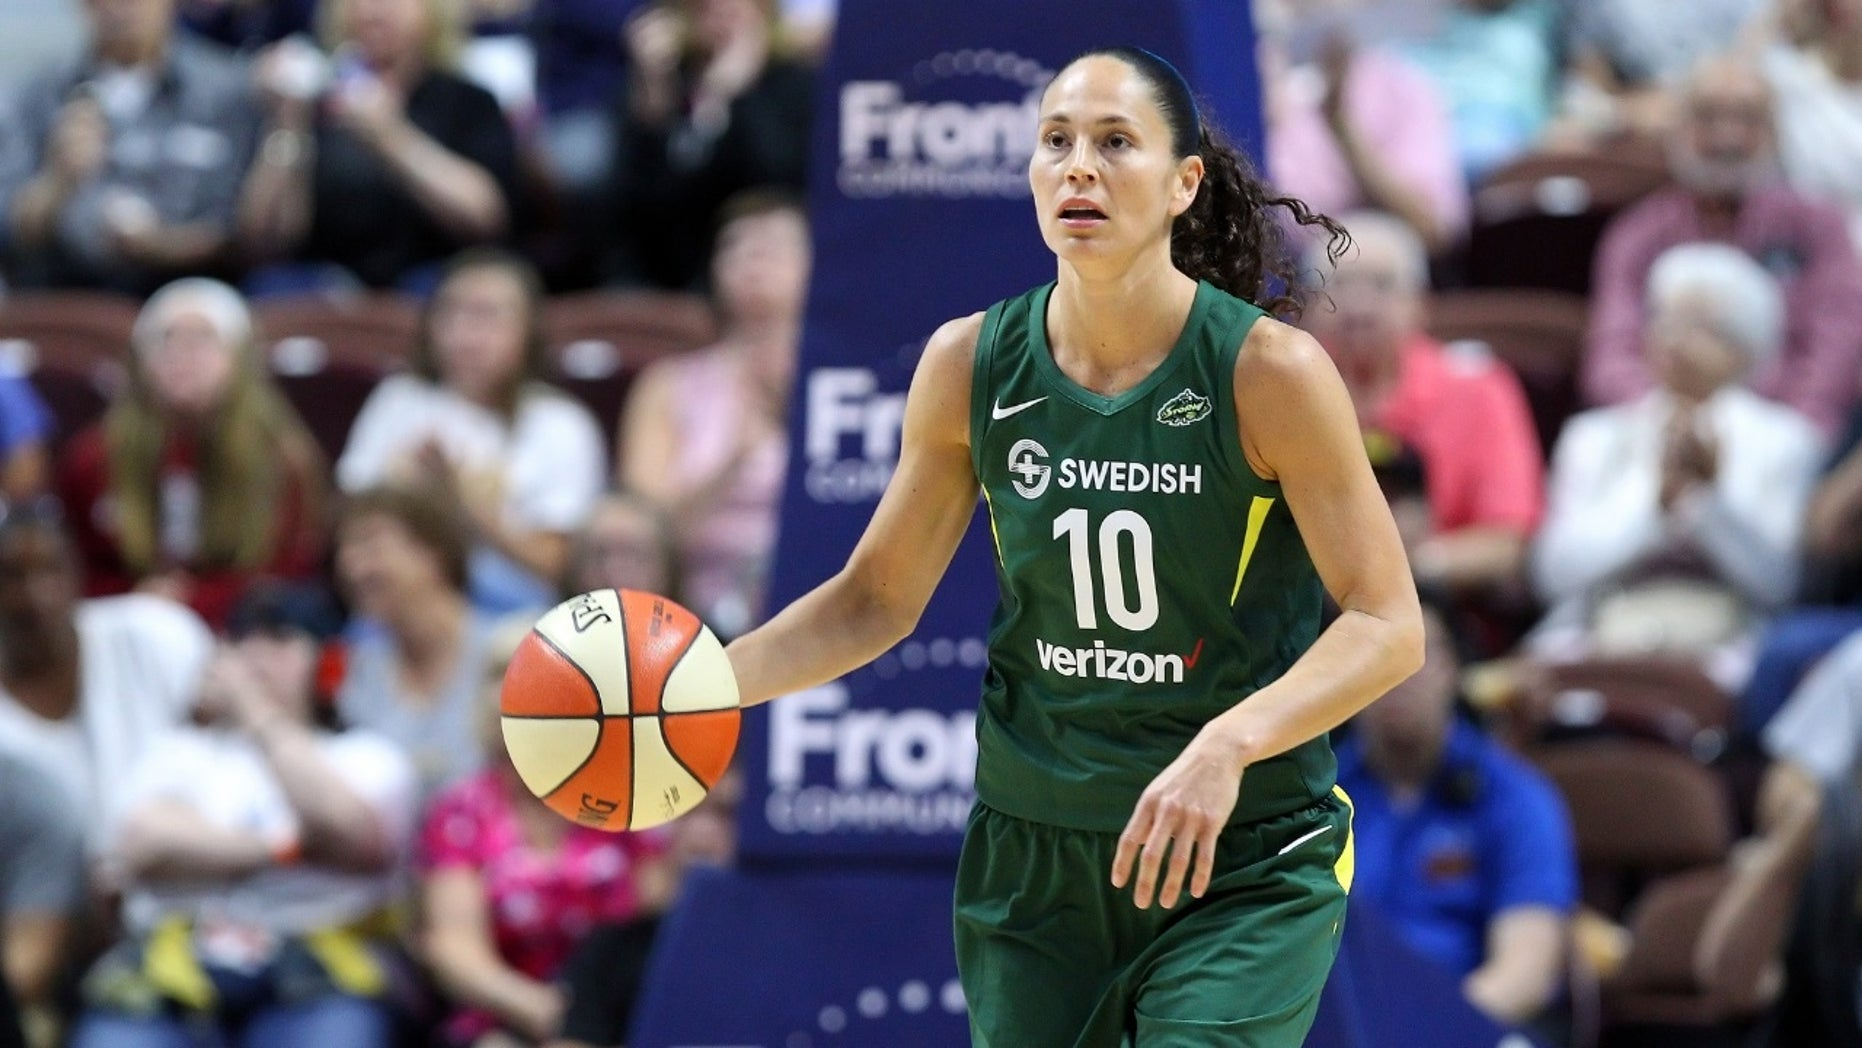 Sue Bird said players from the Seattle Storm were not interested in going to the White House if invited.